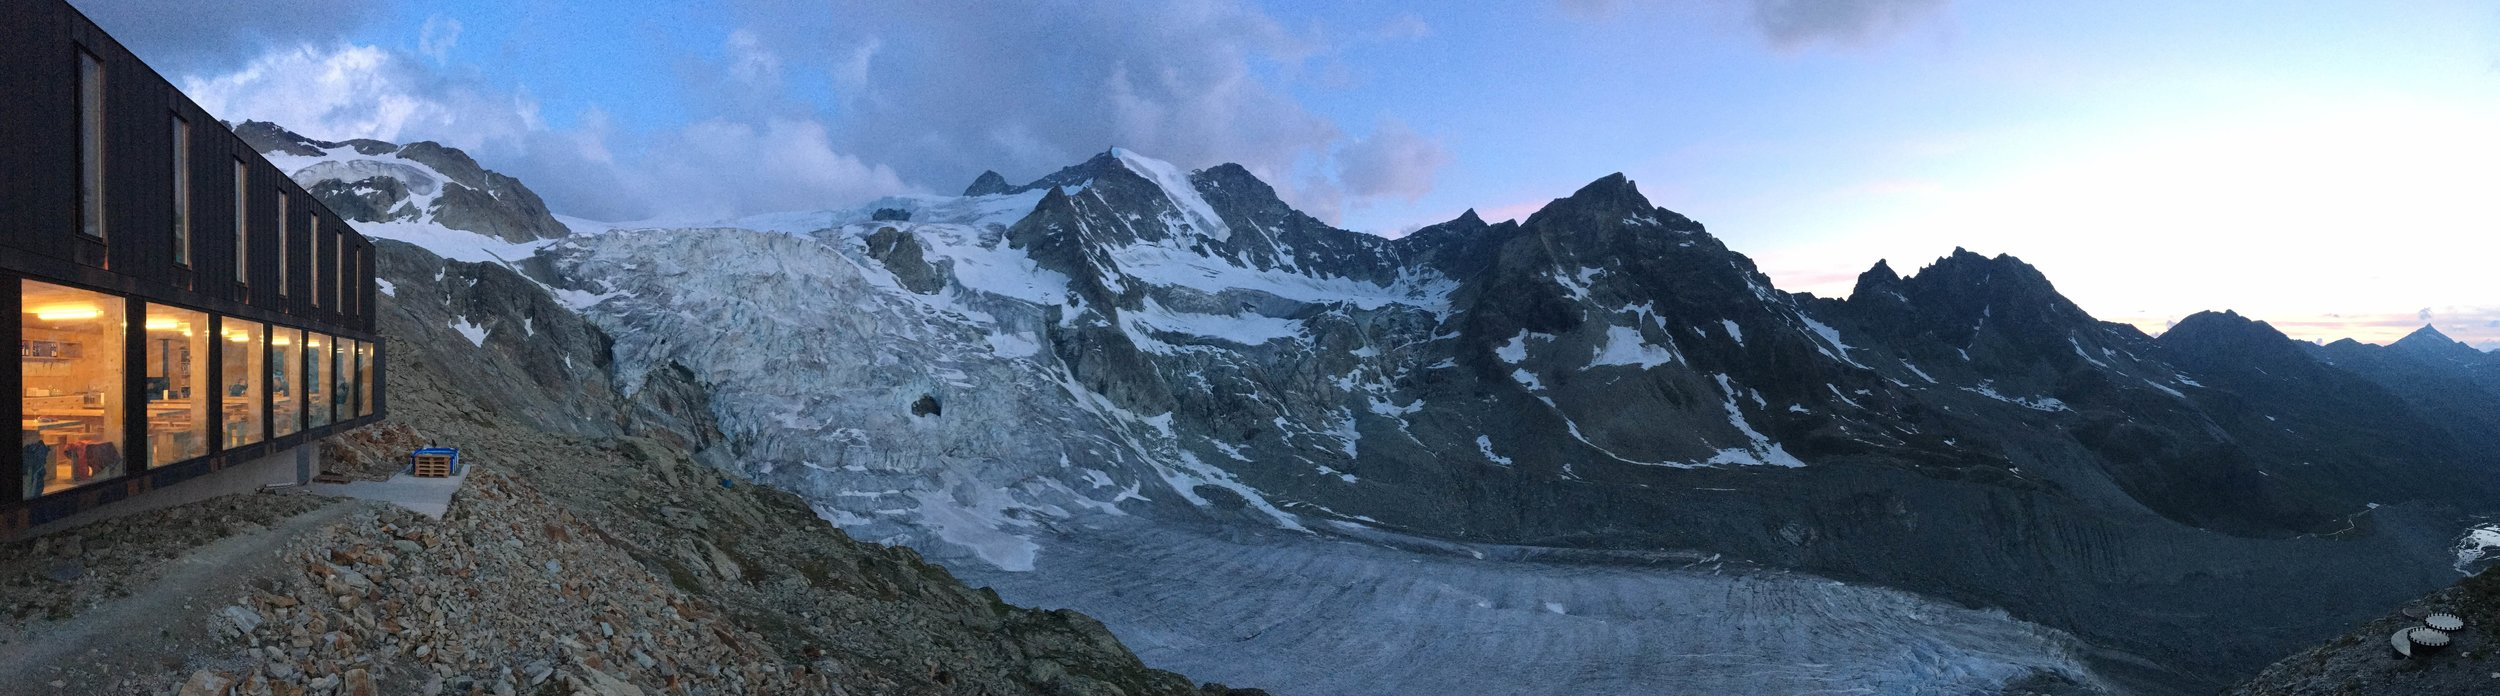 Haute Route Hike: Cabane de Moiry was one of our favourite alpine huts